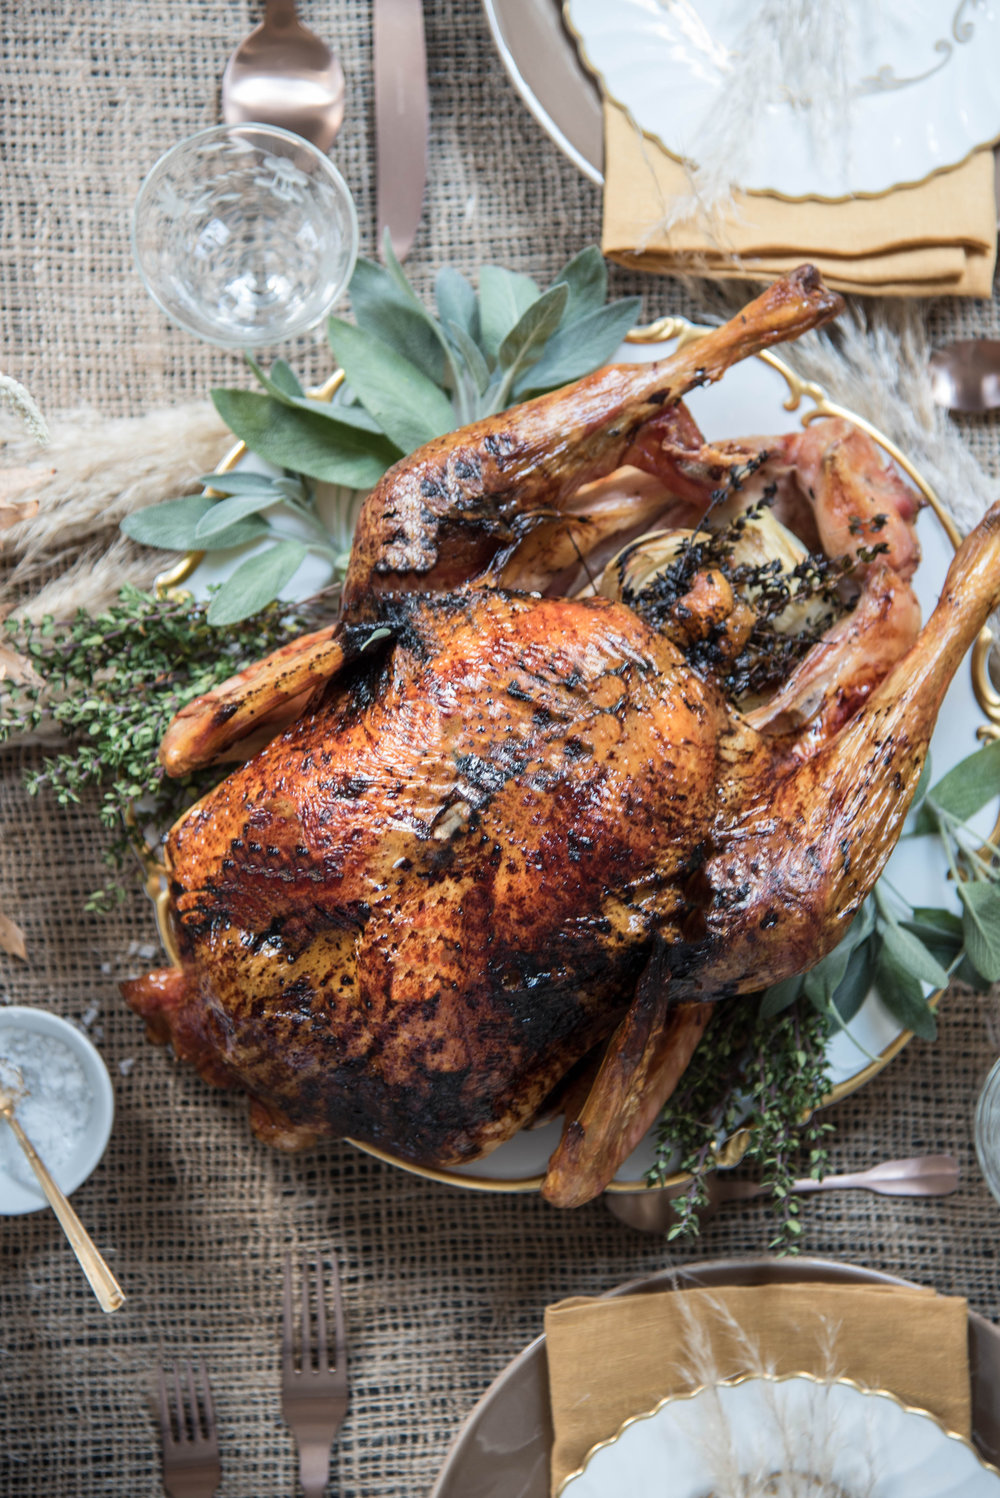 ROSE & IVY Journal A Harvest Table Recipe | Cider Glazed Turkey with Thyme and Sage